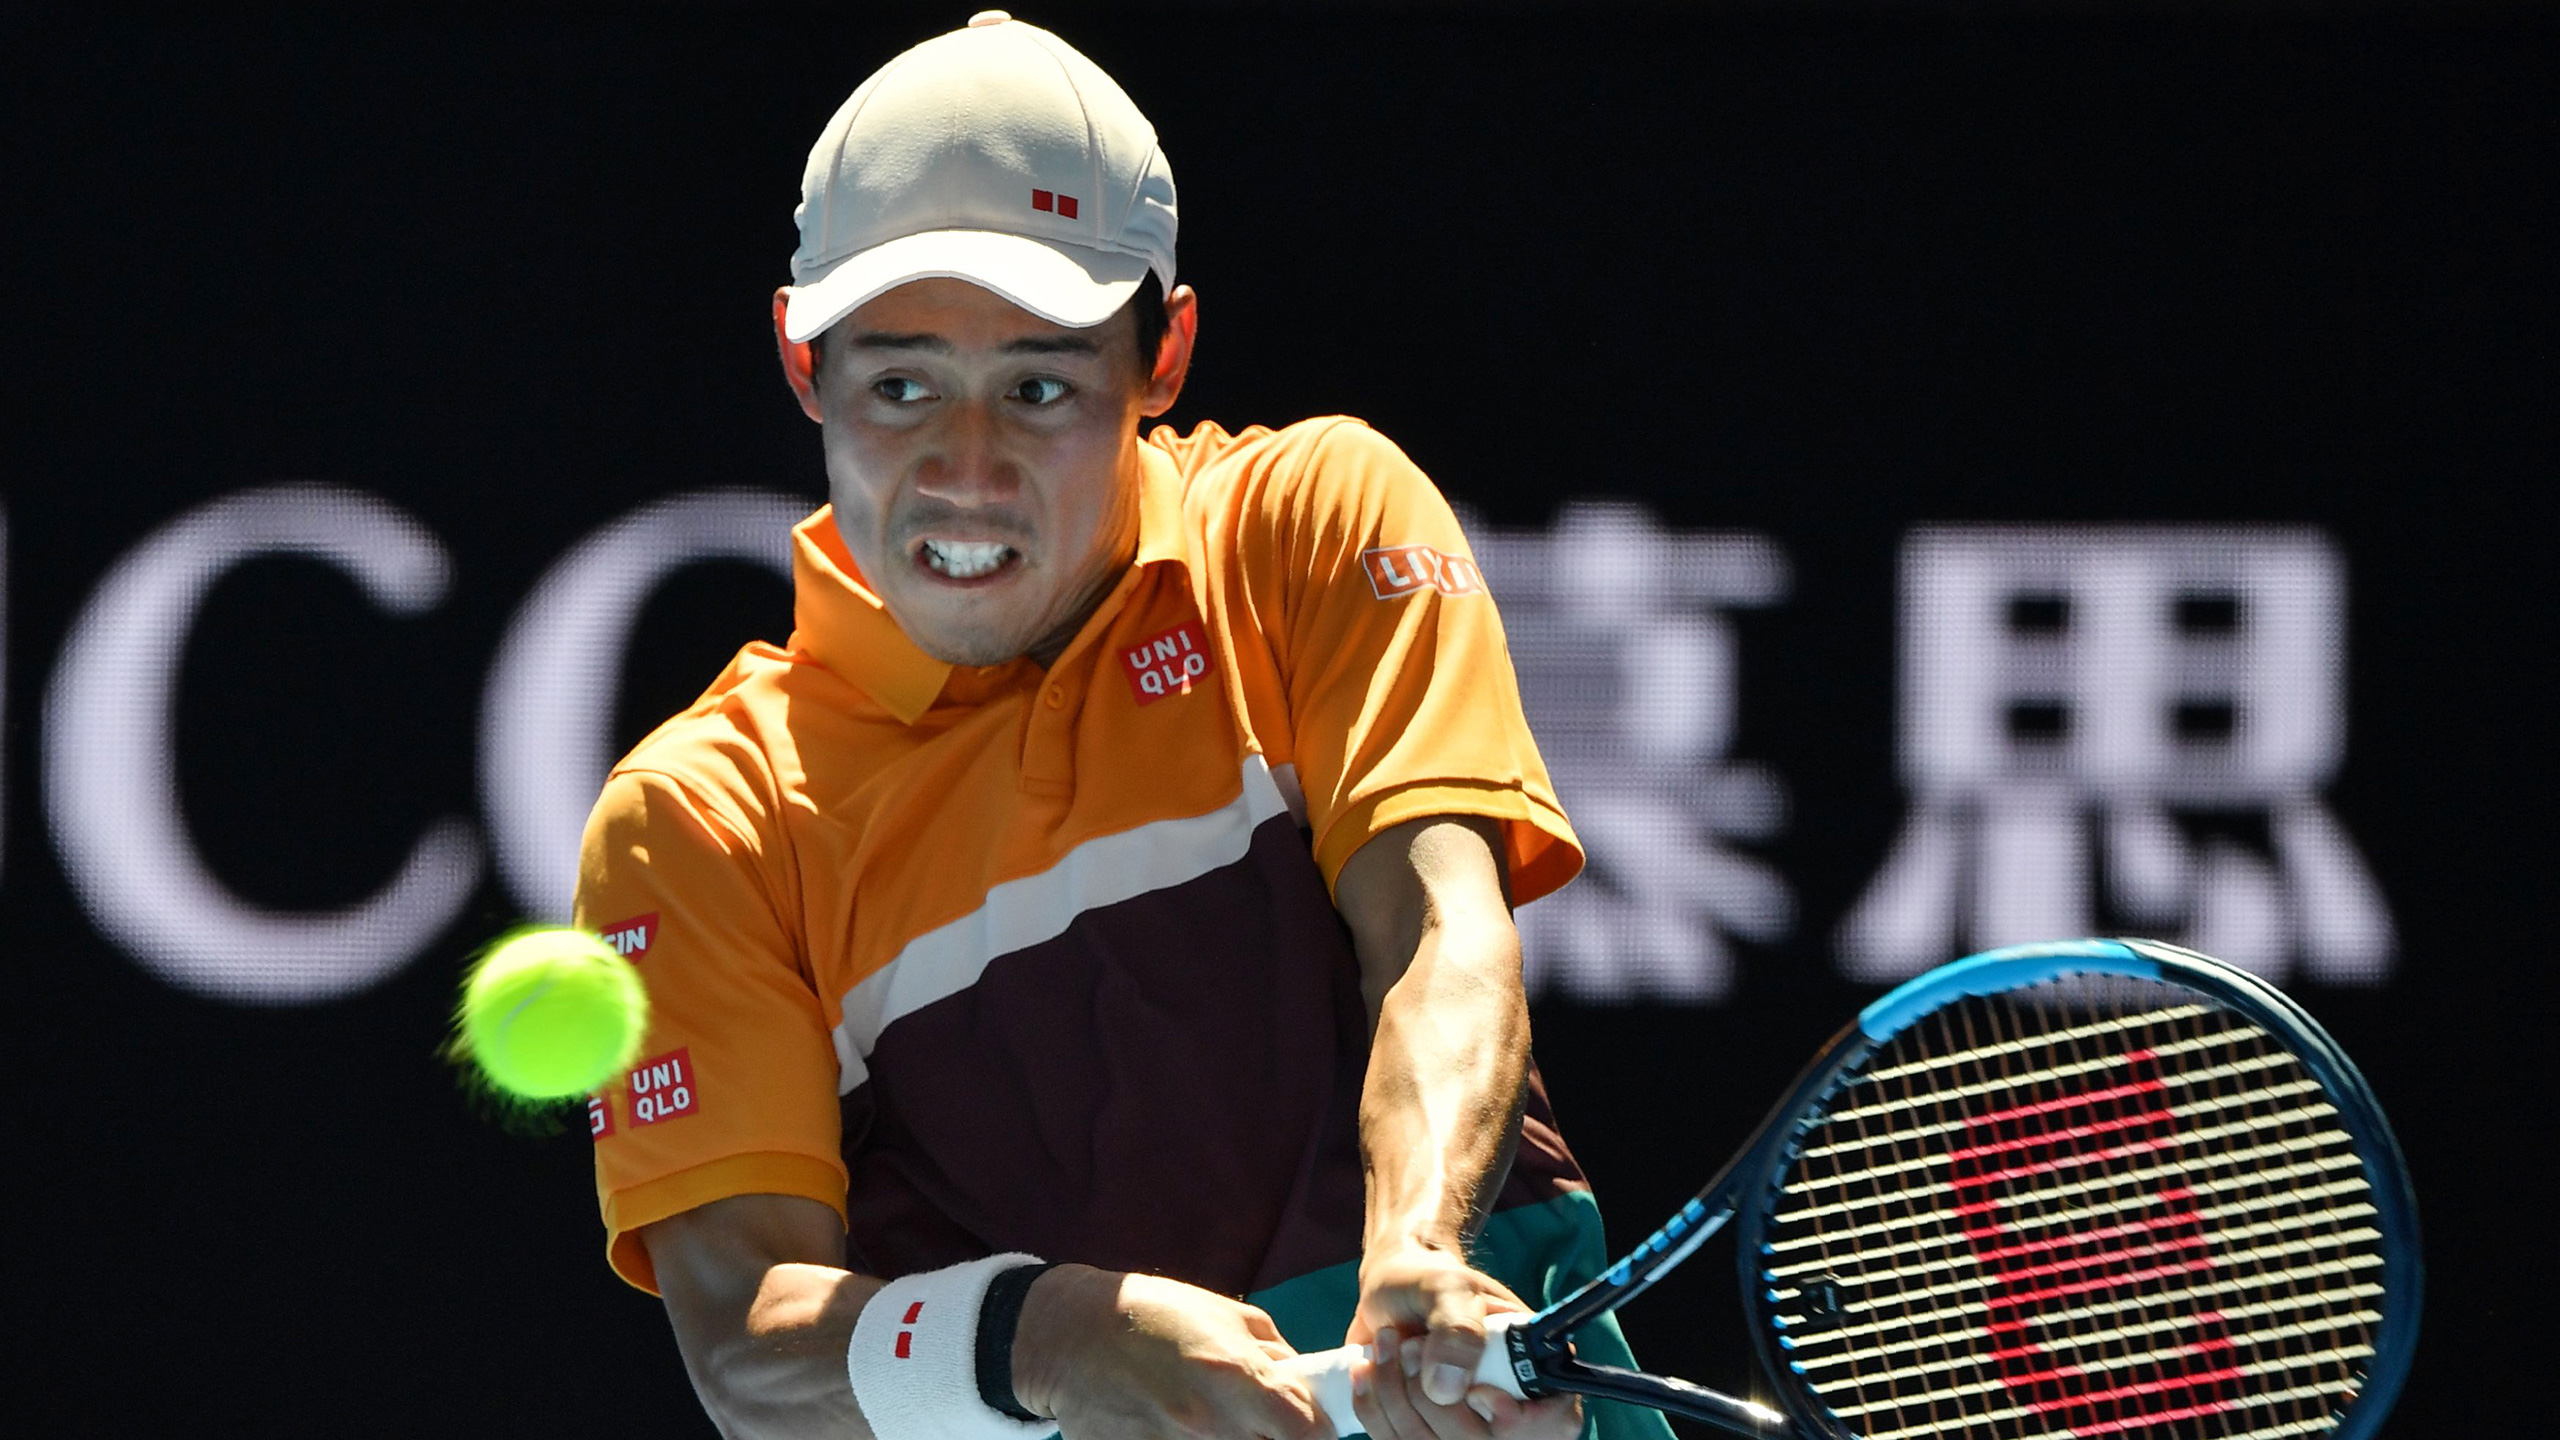 (8) Nishikori vs. (23) Carreno Busta (Men's Fourth Round)